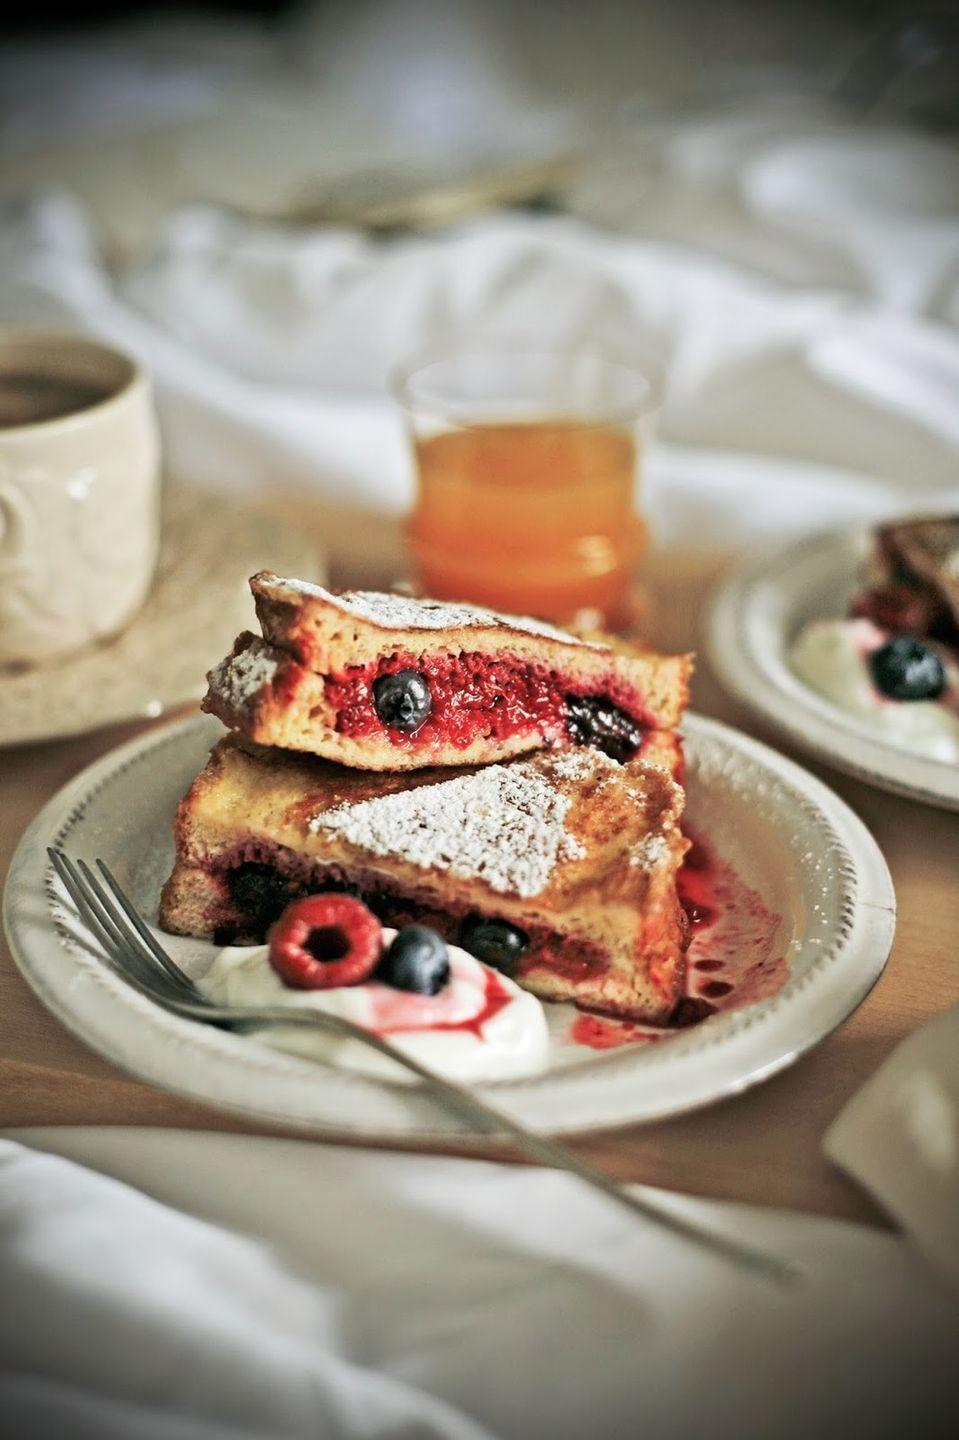 """<p>Fluffy brioche bread gets soaked in an egg and milk mixture, then stuffed with fresh fruit in this tasty breakfast recipe.</p><p><strong>Get the recipe at <a href=""""http://www.ilovewildfox.com/iloveyouwildfox/2015/6/5/brioche-french-toast"""" rel=""""nofollow noopener"""" target=""""_blank"""" data-ylk=""""slk:I Love Inspiration"""" class=""""link rapid-noclick-resp"""">I Love Inspiration</a>.</strong> </p>"""